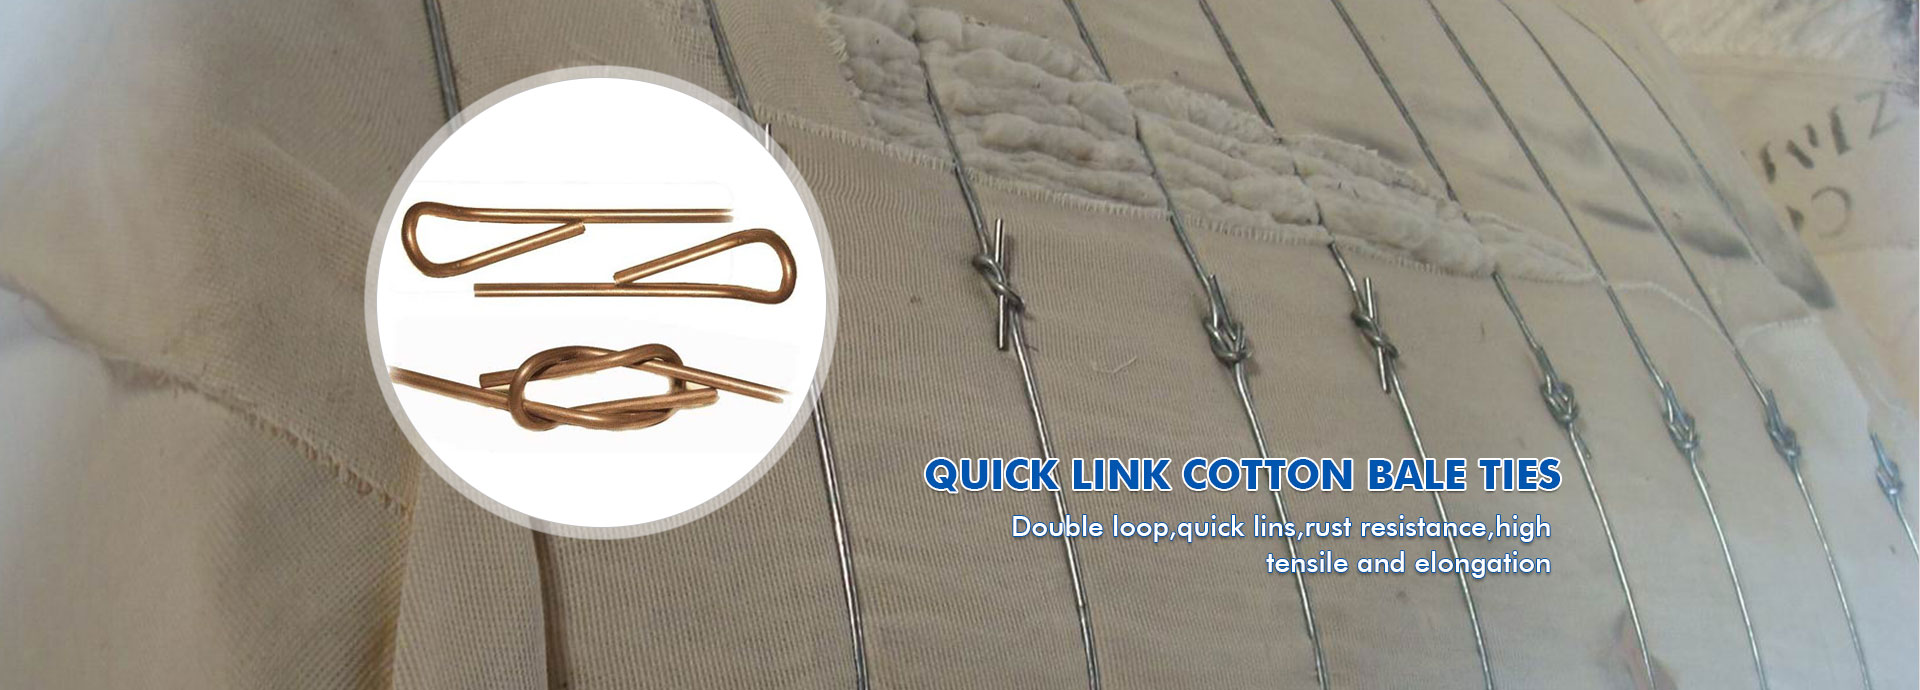 Quick Link Cotton Bale Ties